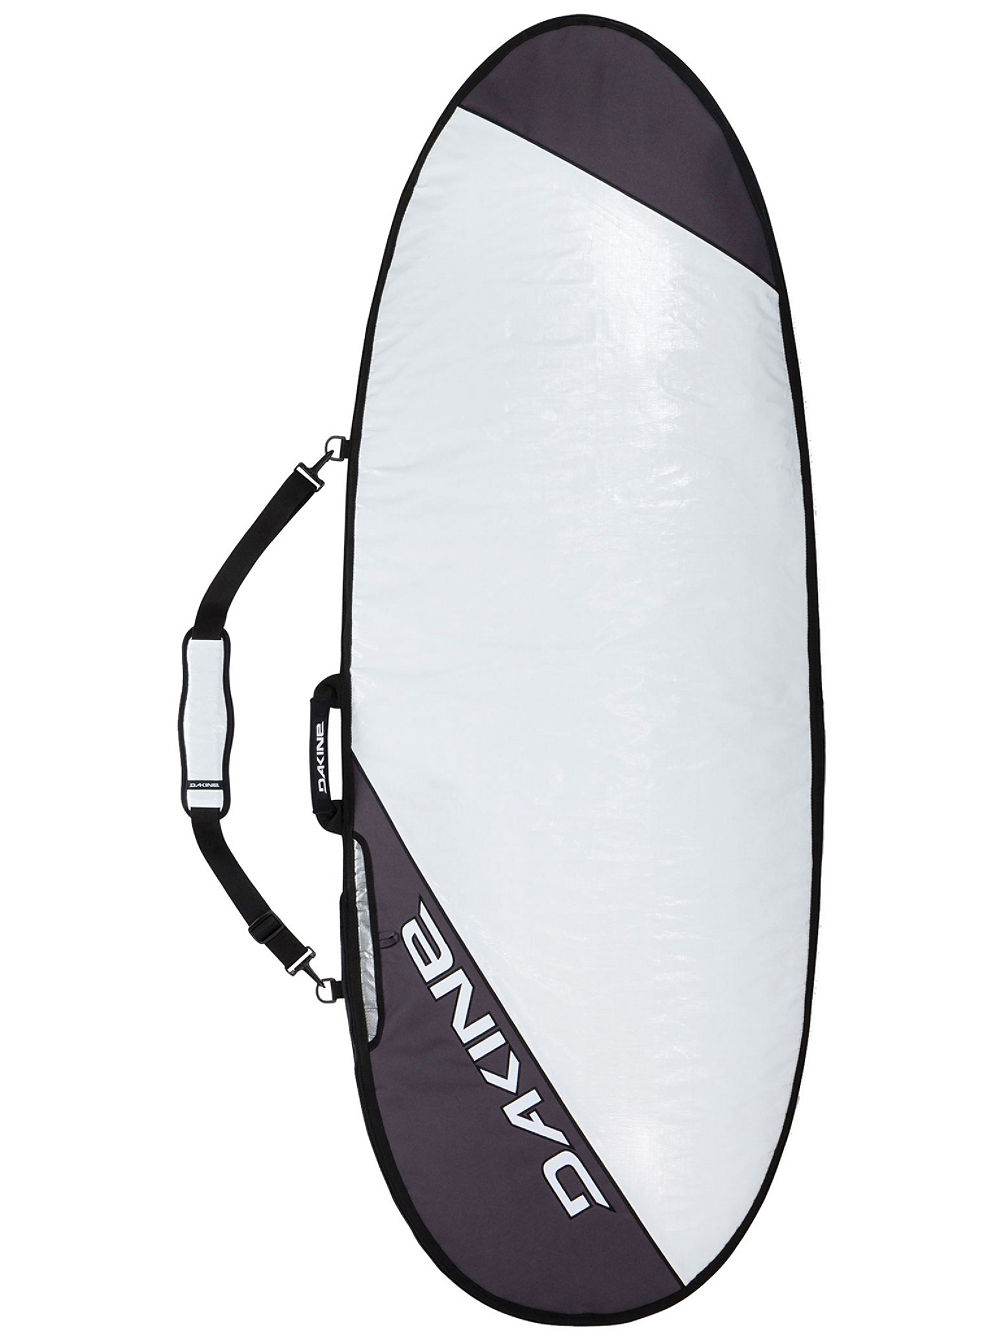 5.4 Surf Daylight-Hybrid Boardbag